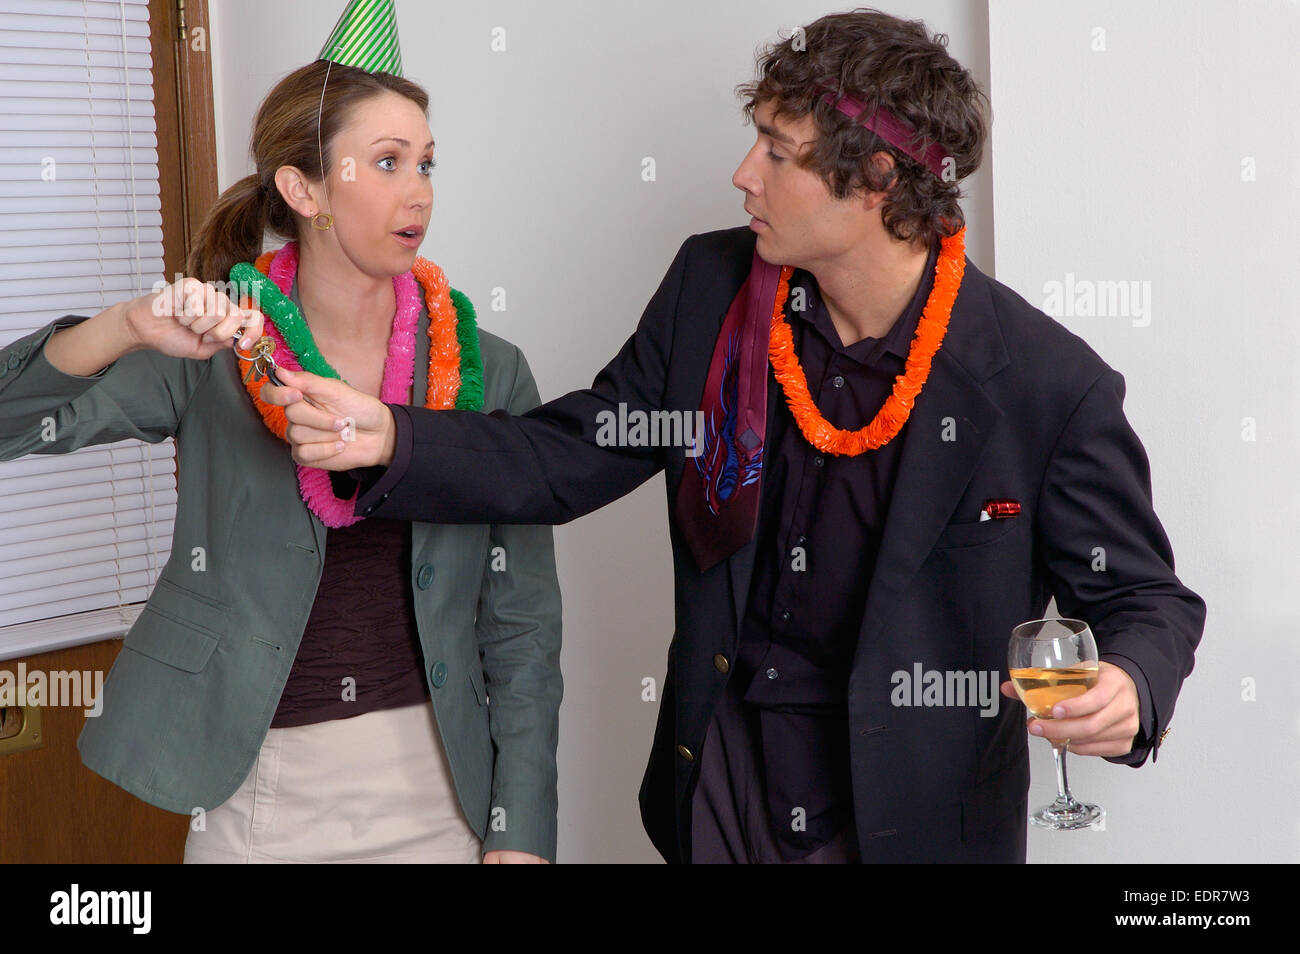 A woman at an office party taking car keys away from a disheveled looking man who has been drinking alcohol. Stock Photo